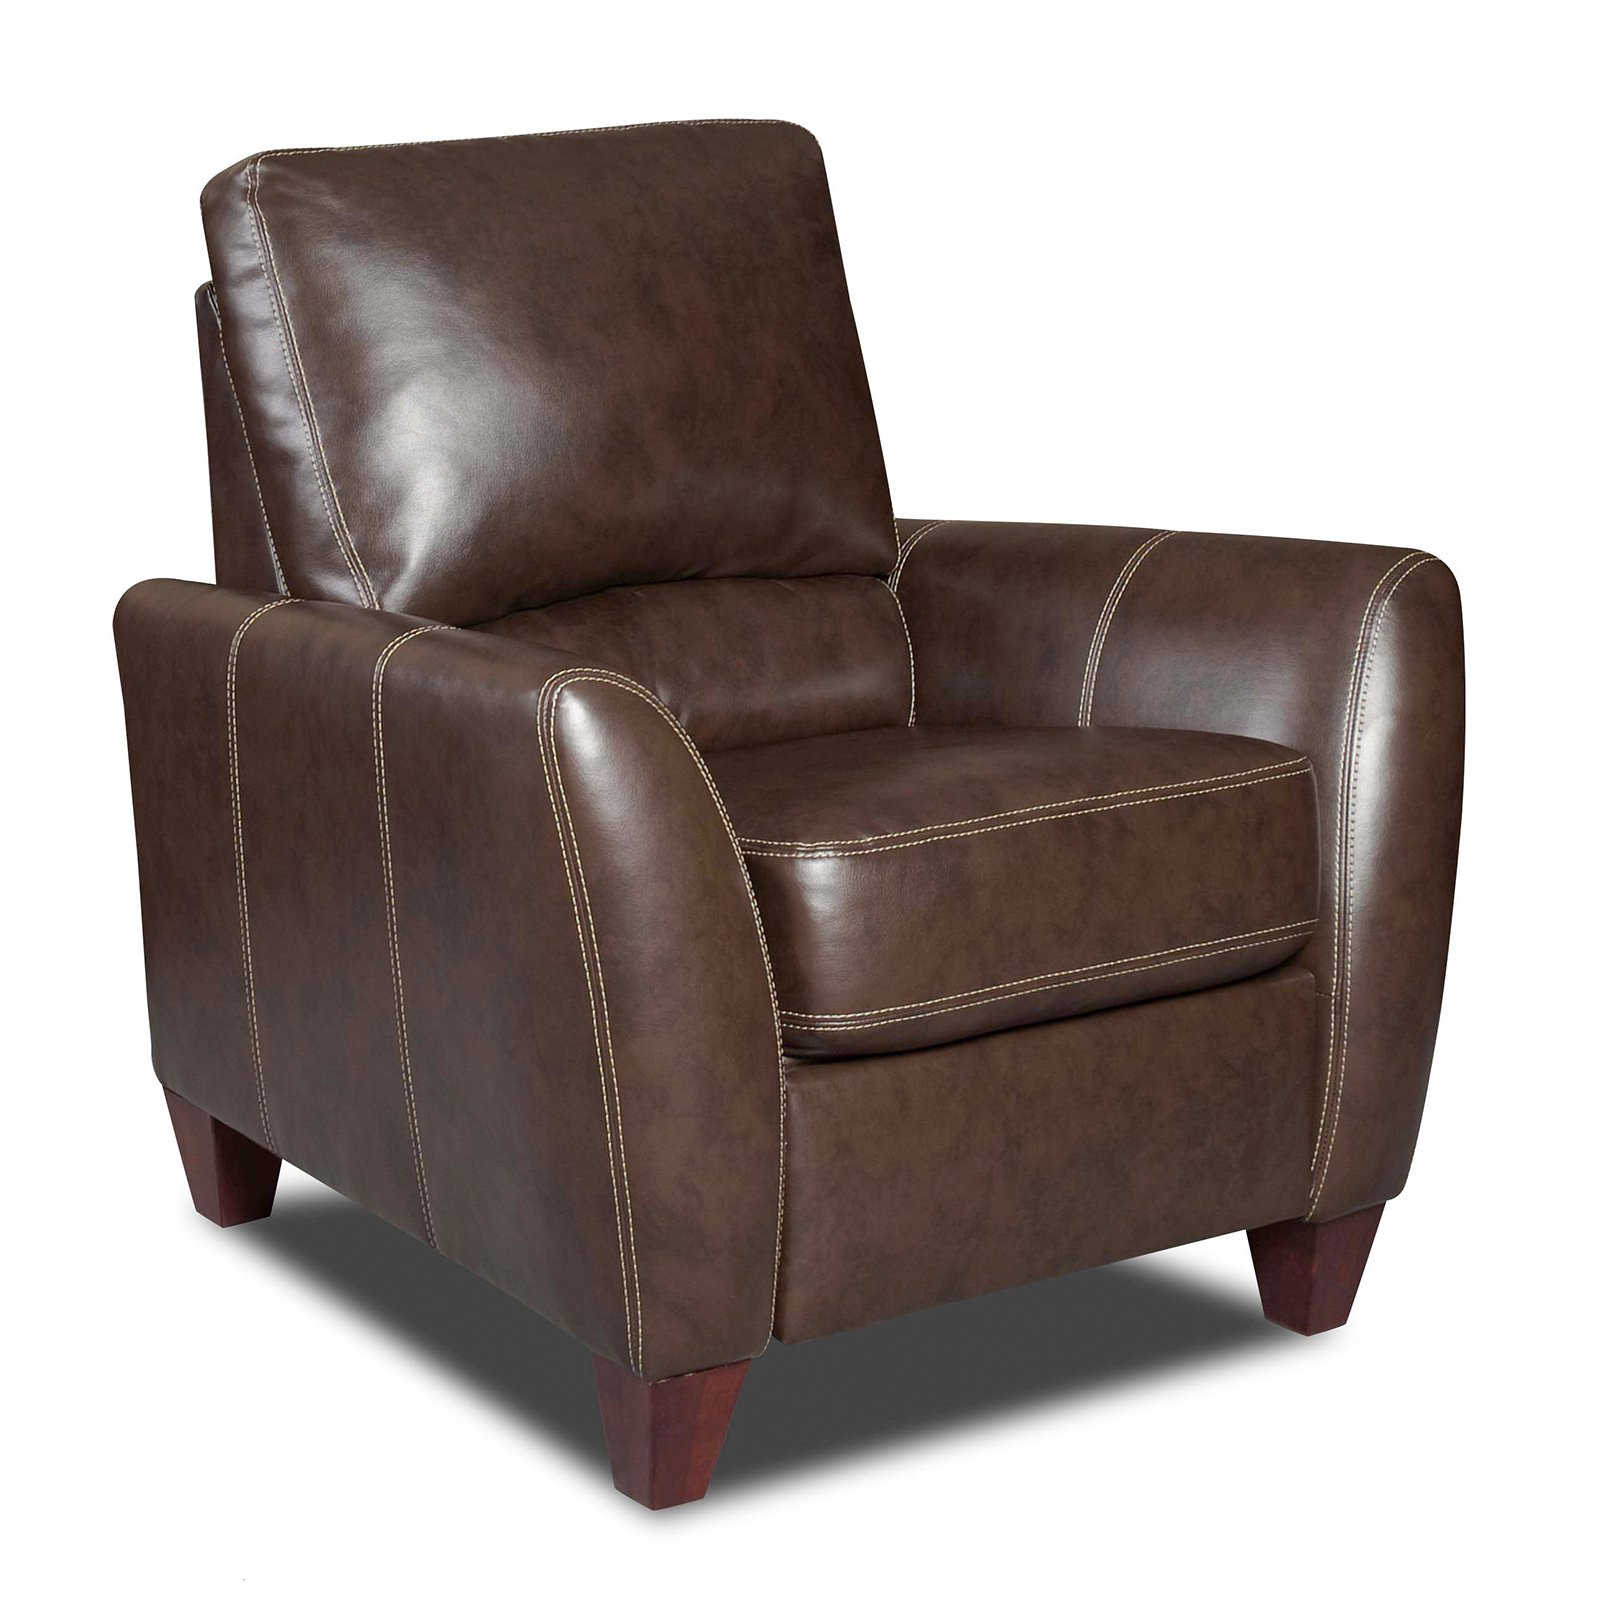 Chelsea Home Furniture Fairfax Bonded Leather Push Back Recliner by Chelsea Home Furniture LLC.